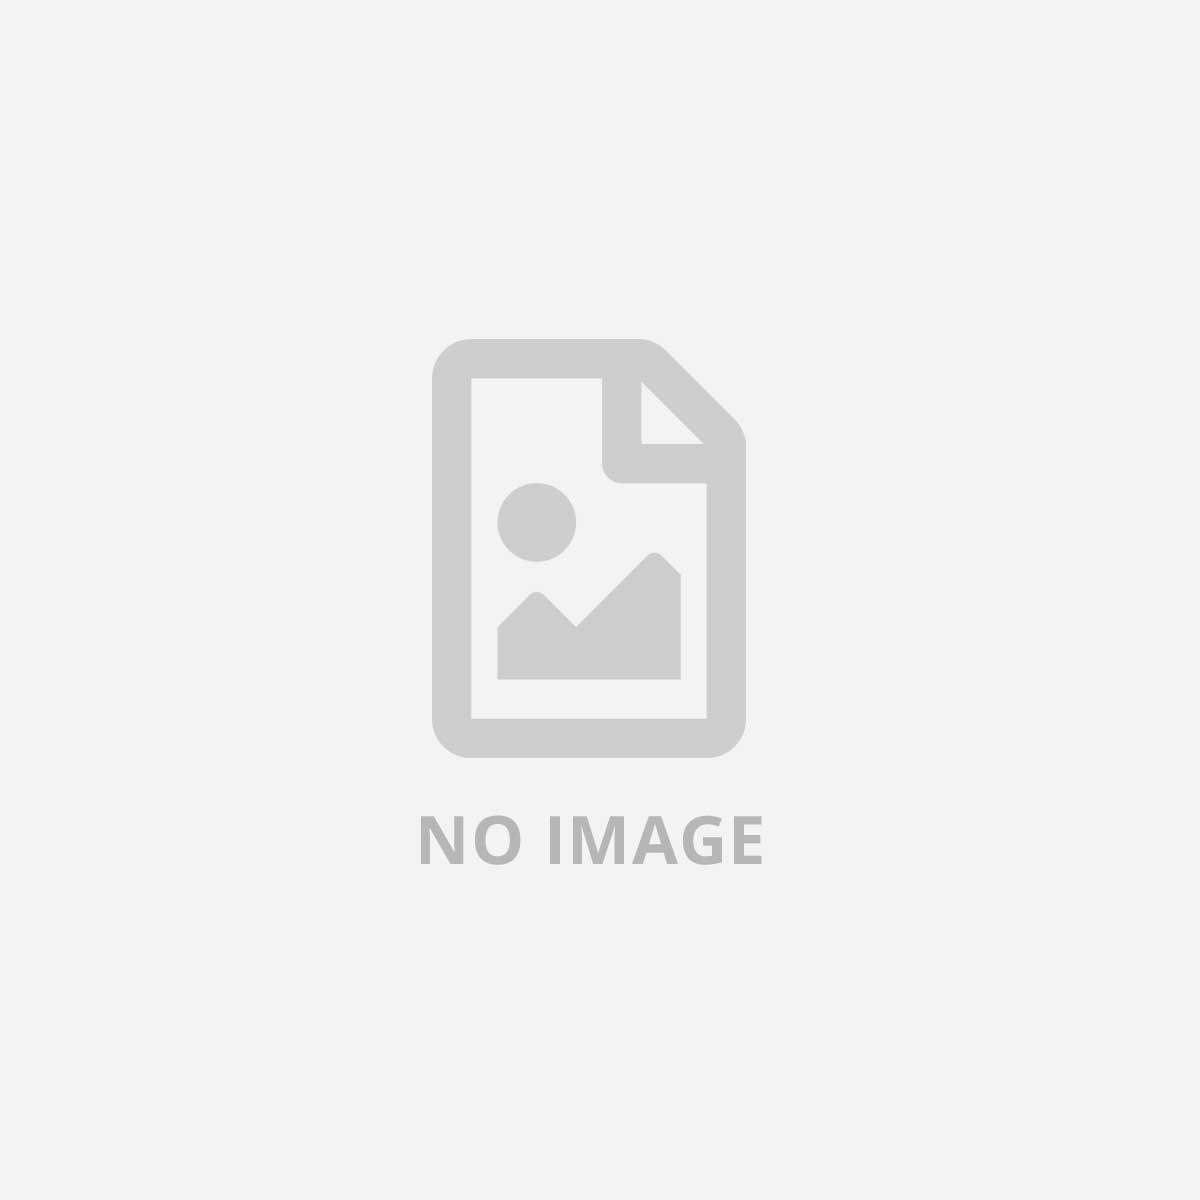 JF SOUND CUFIT JEEP COMPASS 4CORE